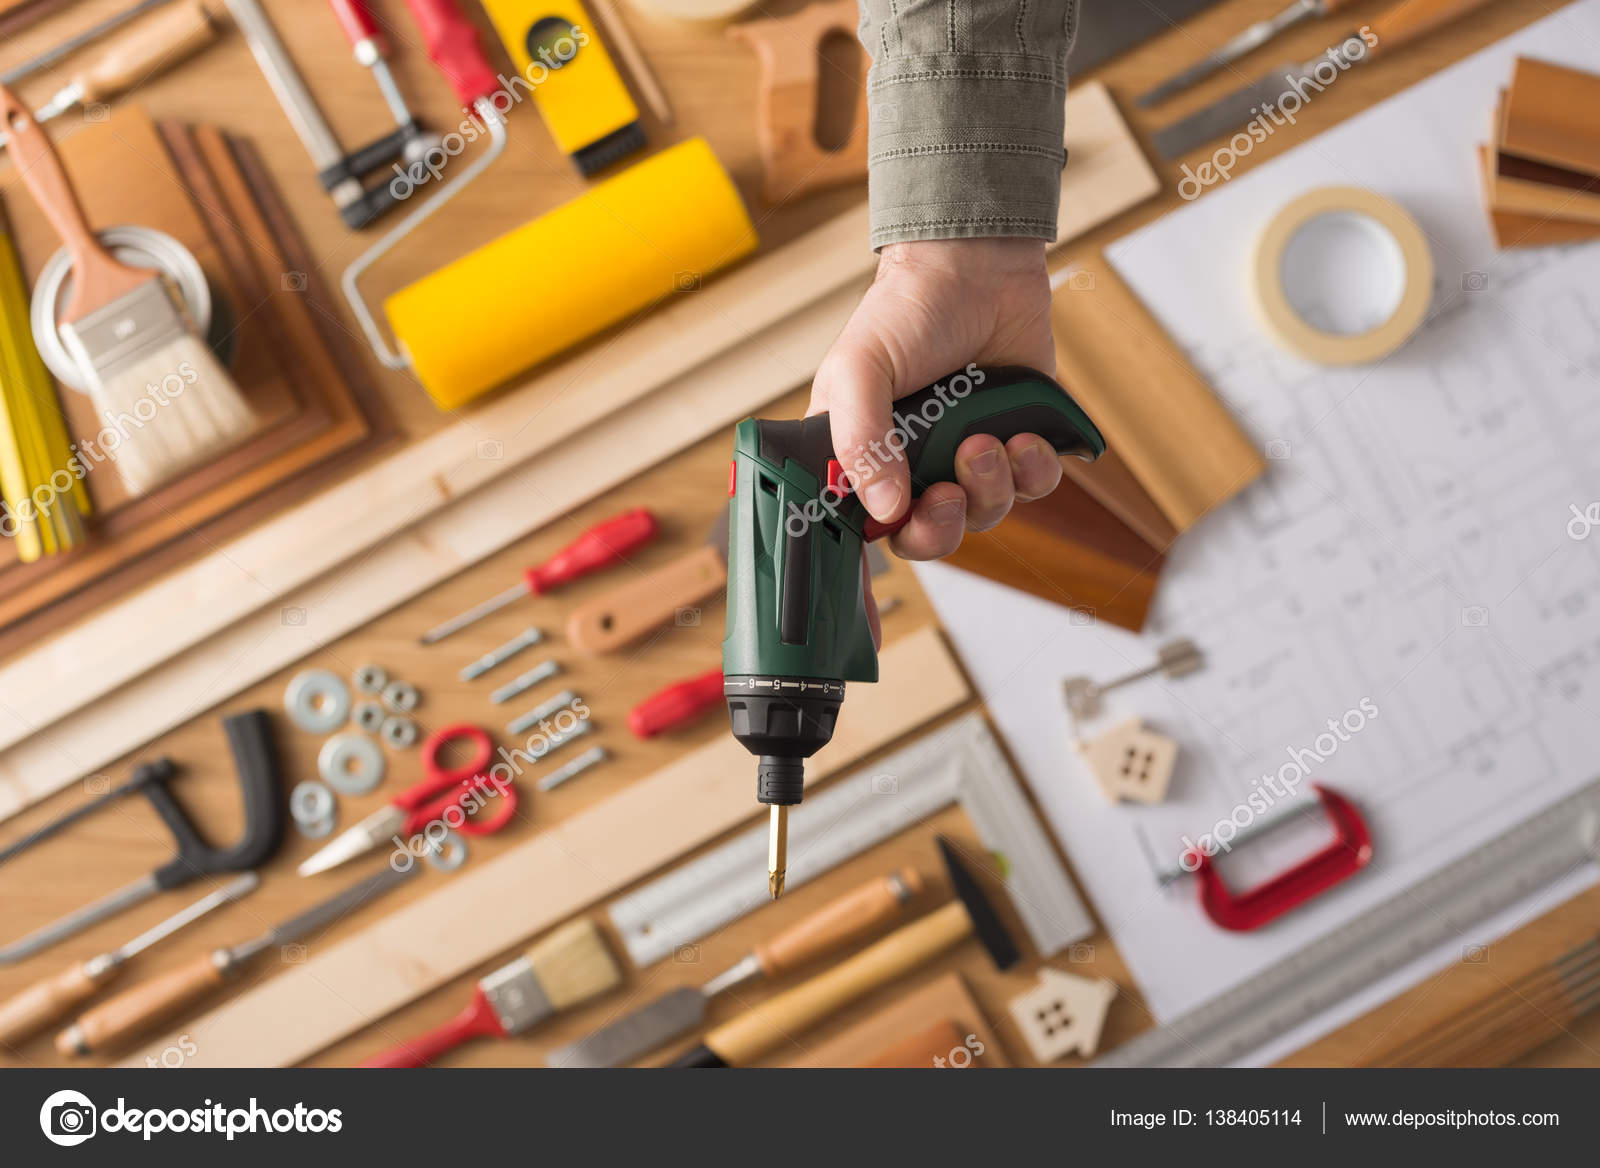 Do it yourself and home renovation tools stock photo stockasso do it yourself and home renovation tools stock photo solutioingenieria Gallery